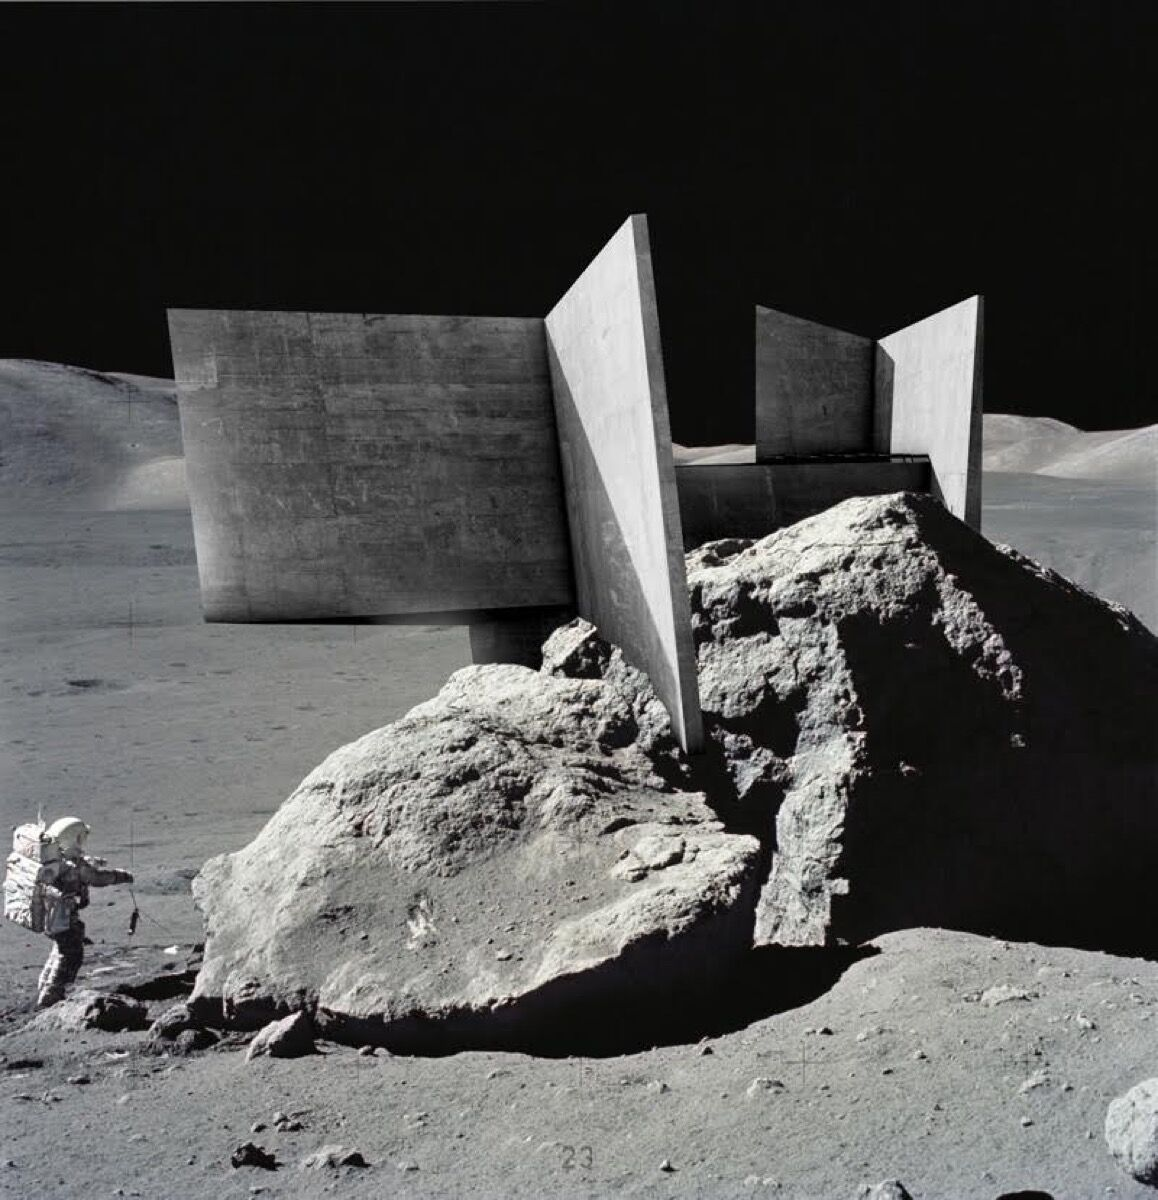 Proposal for a Lunar Temple #1, Brutalist. Image courtesy of NASA/Eugene Cernan, Alex Hogrefe.